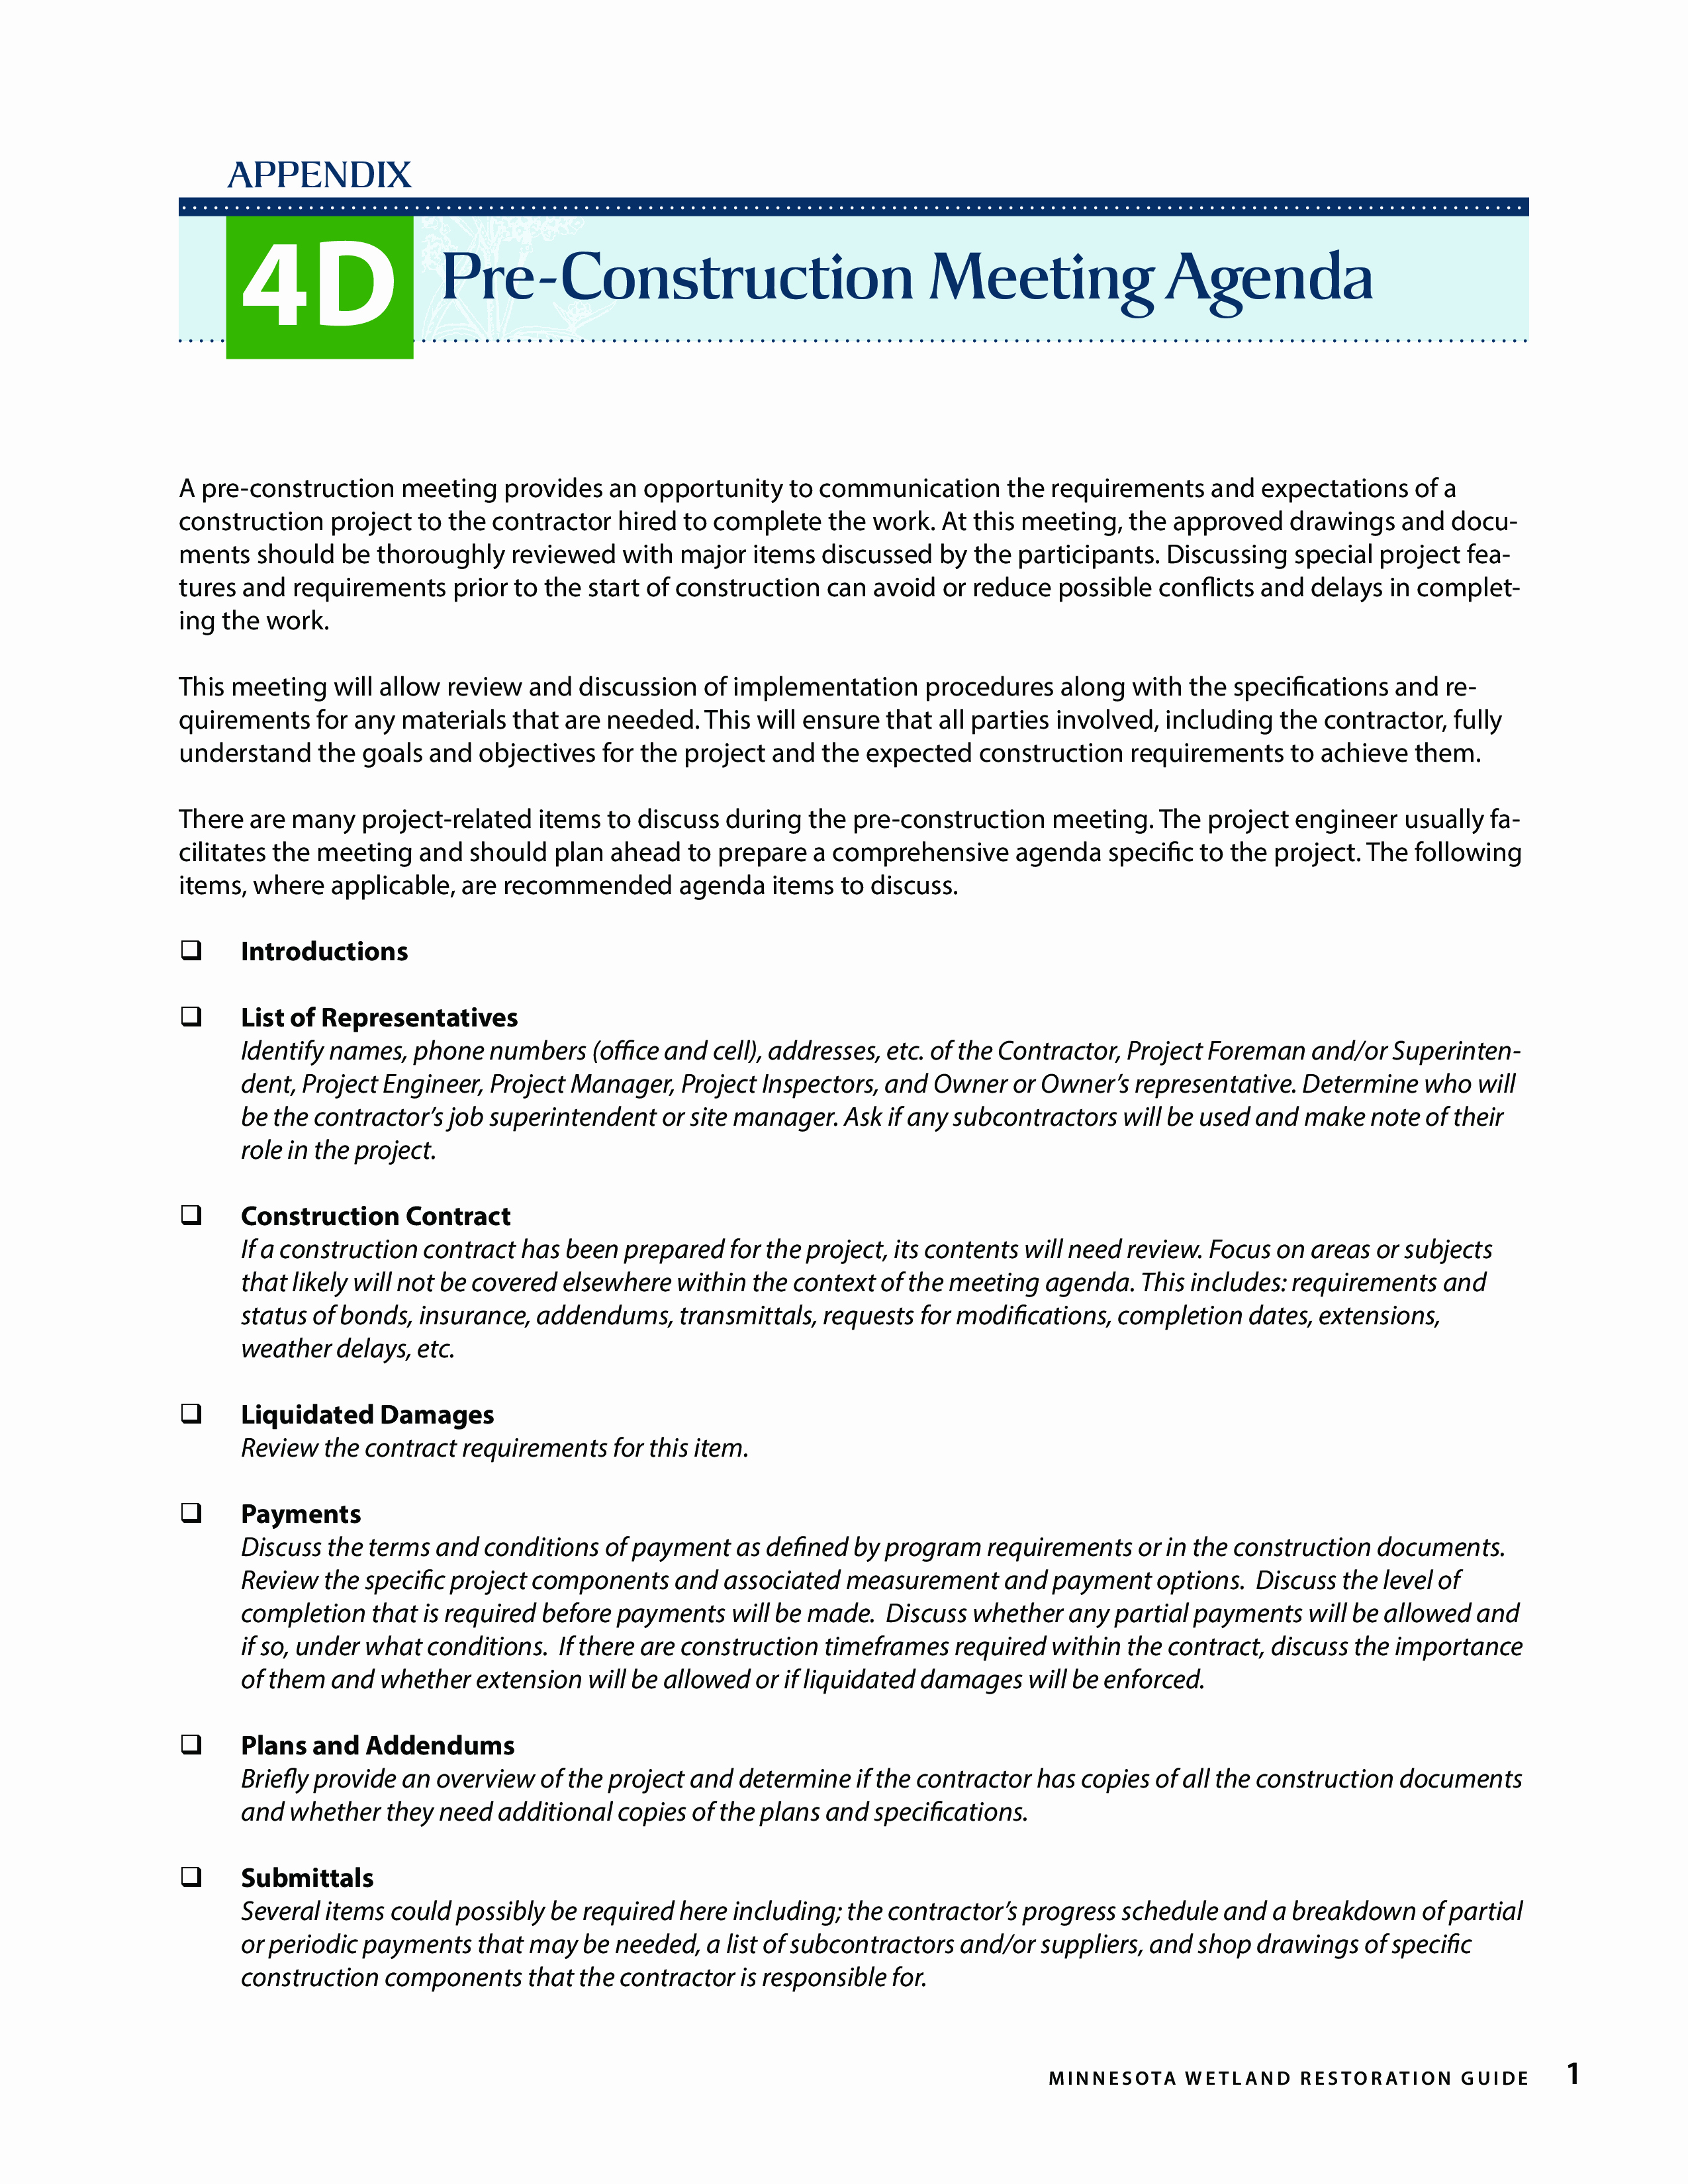 Pre Construction Meeting Agenda Template Beautiful Free Pre Construction Meeting Agenda